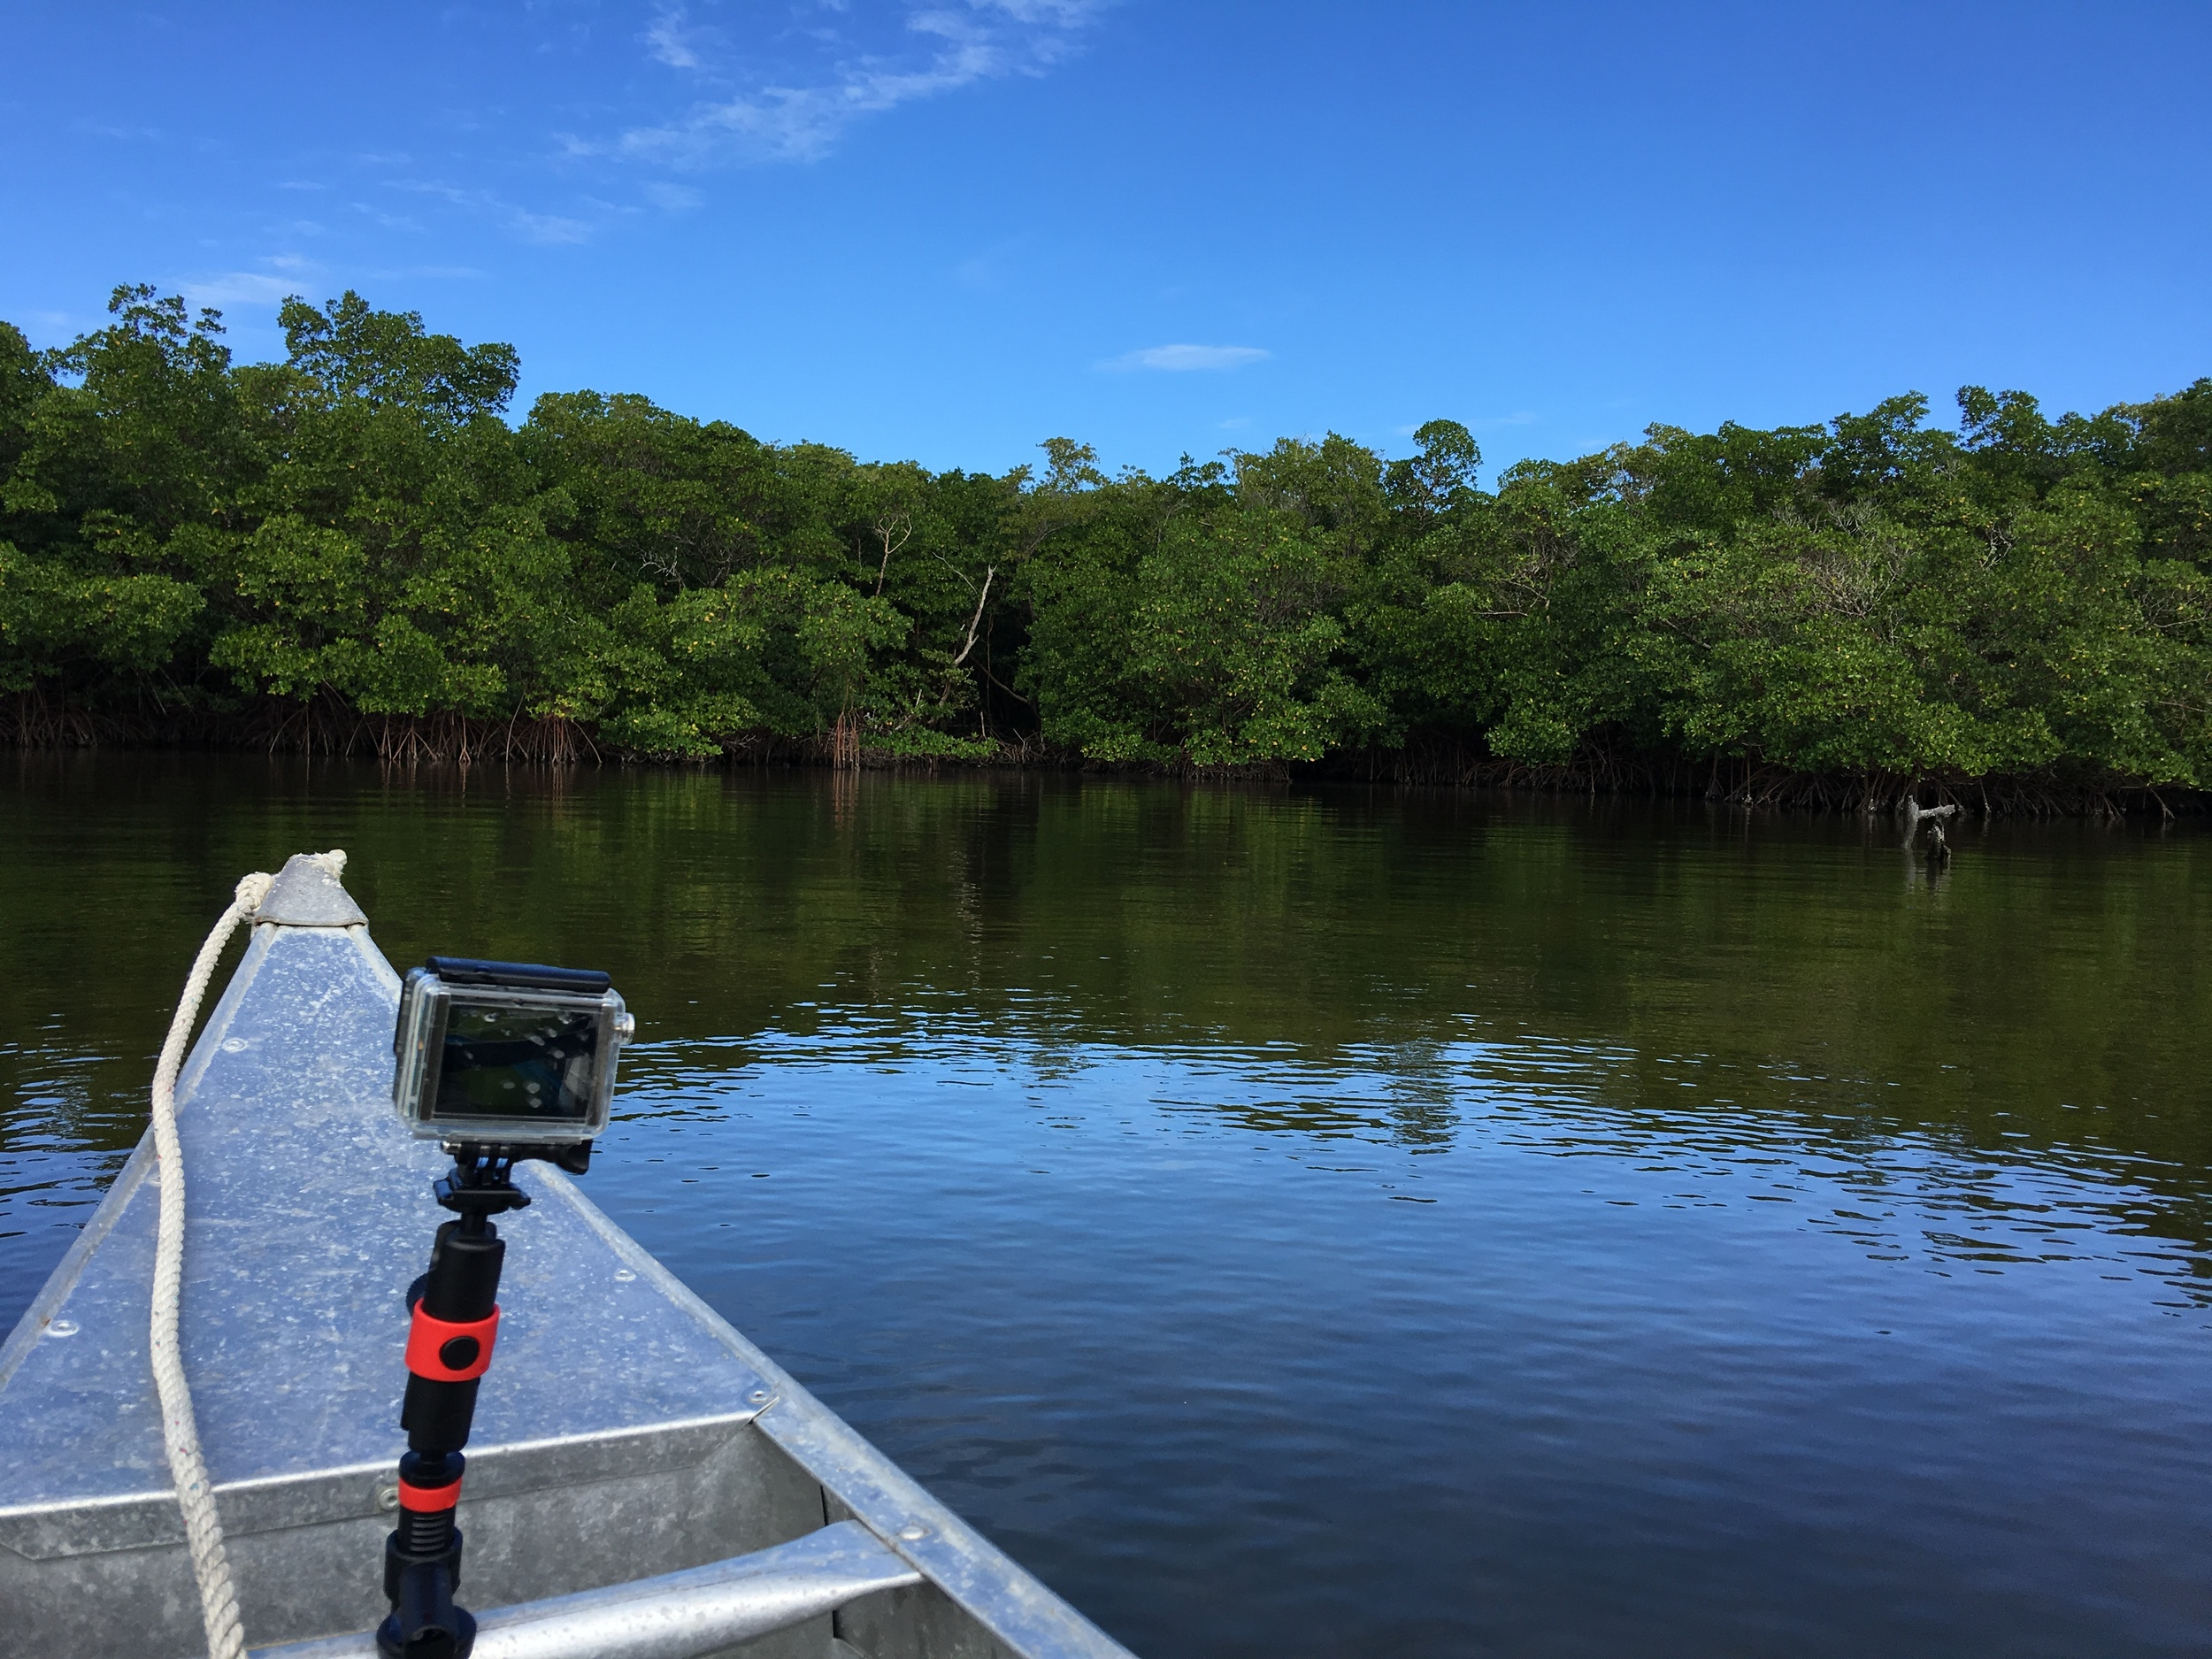 Ctaching some GoPro footage on the waterways of Everglades National Park in Florida. Park #1!